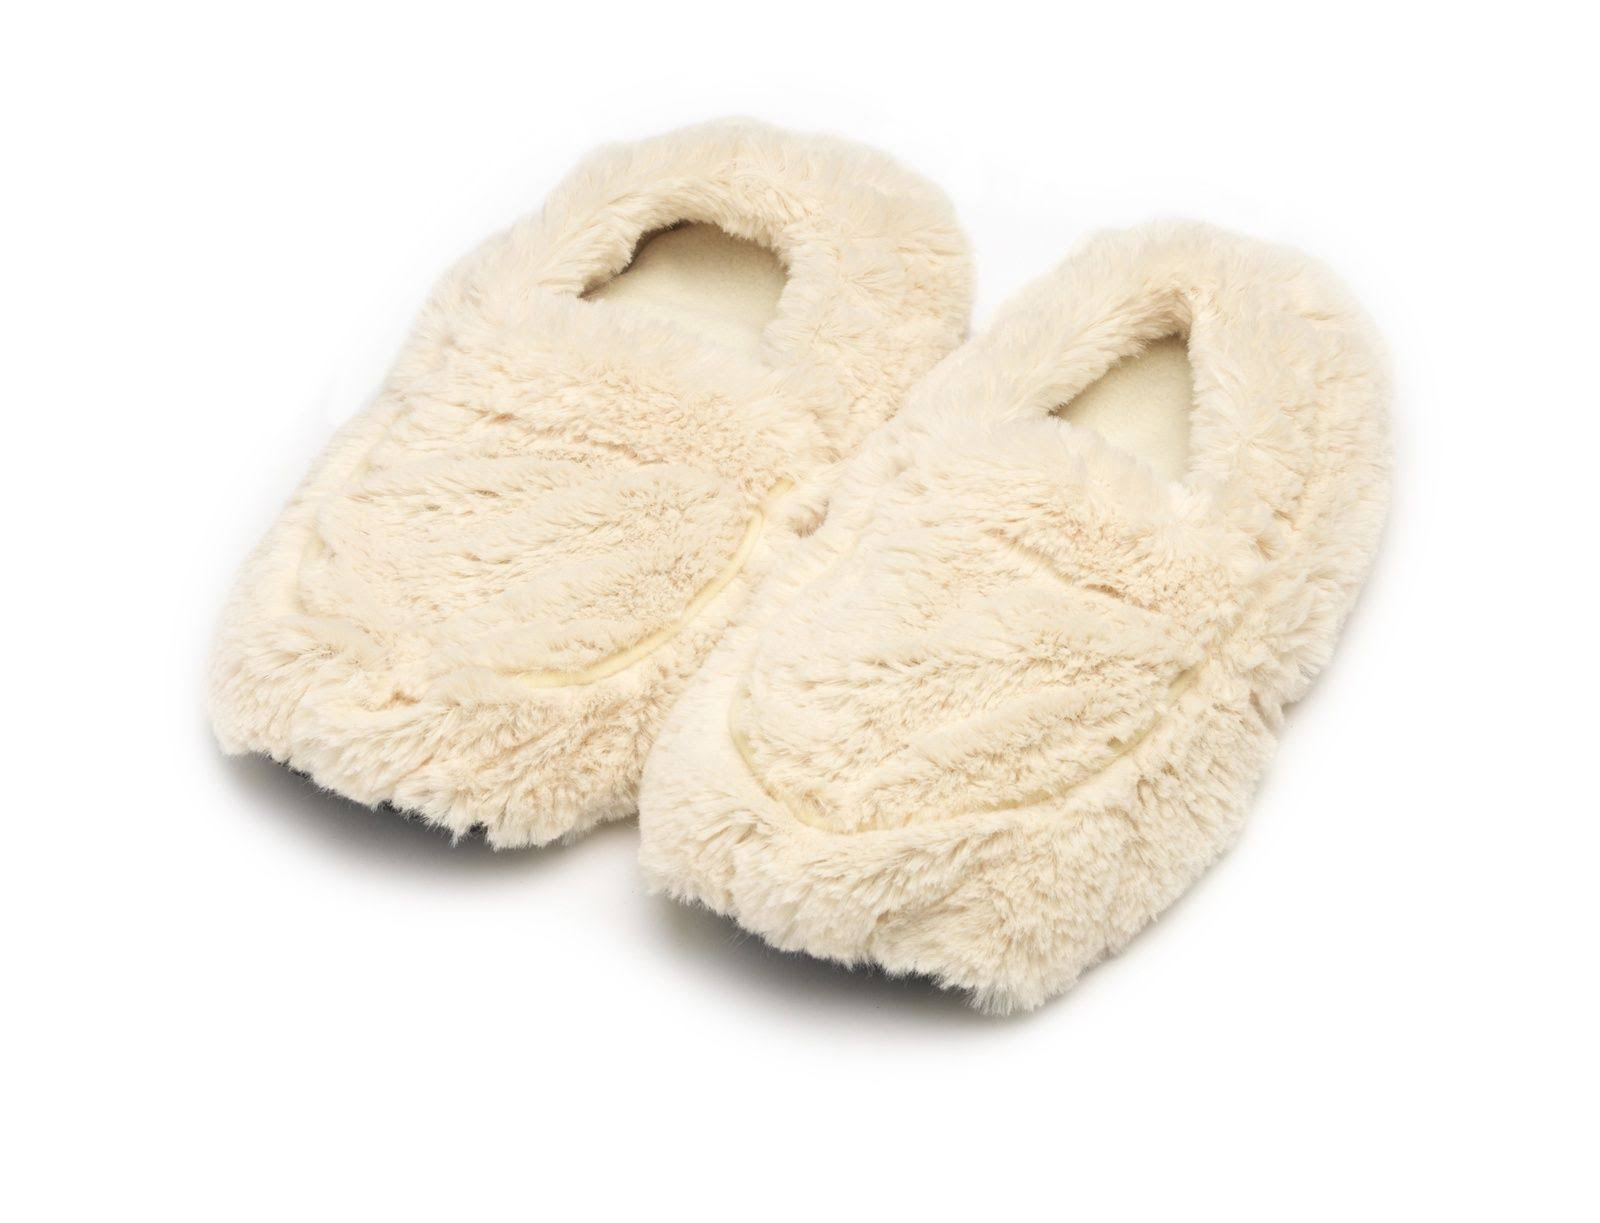 Furry Warmers Fully Microwavable Furry Slippers - Cream